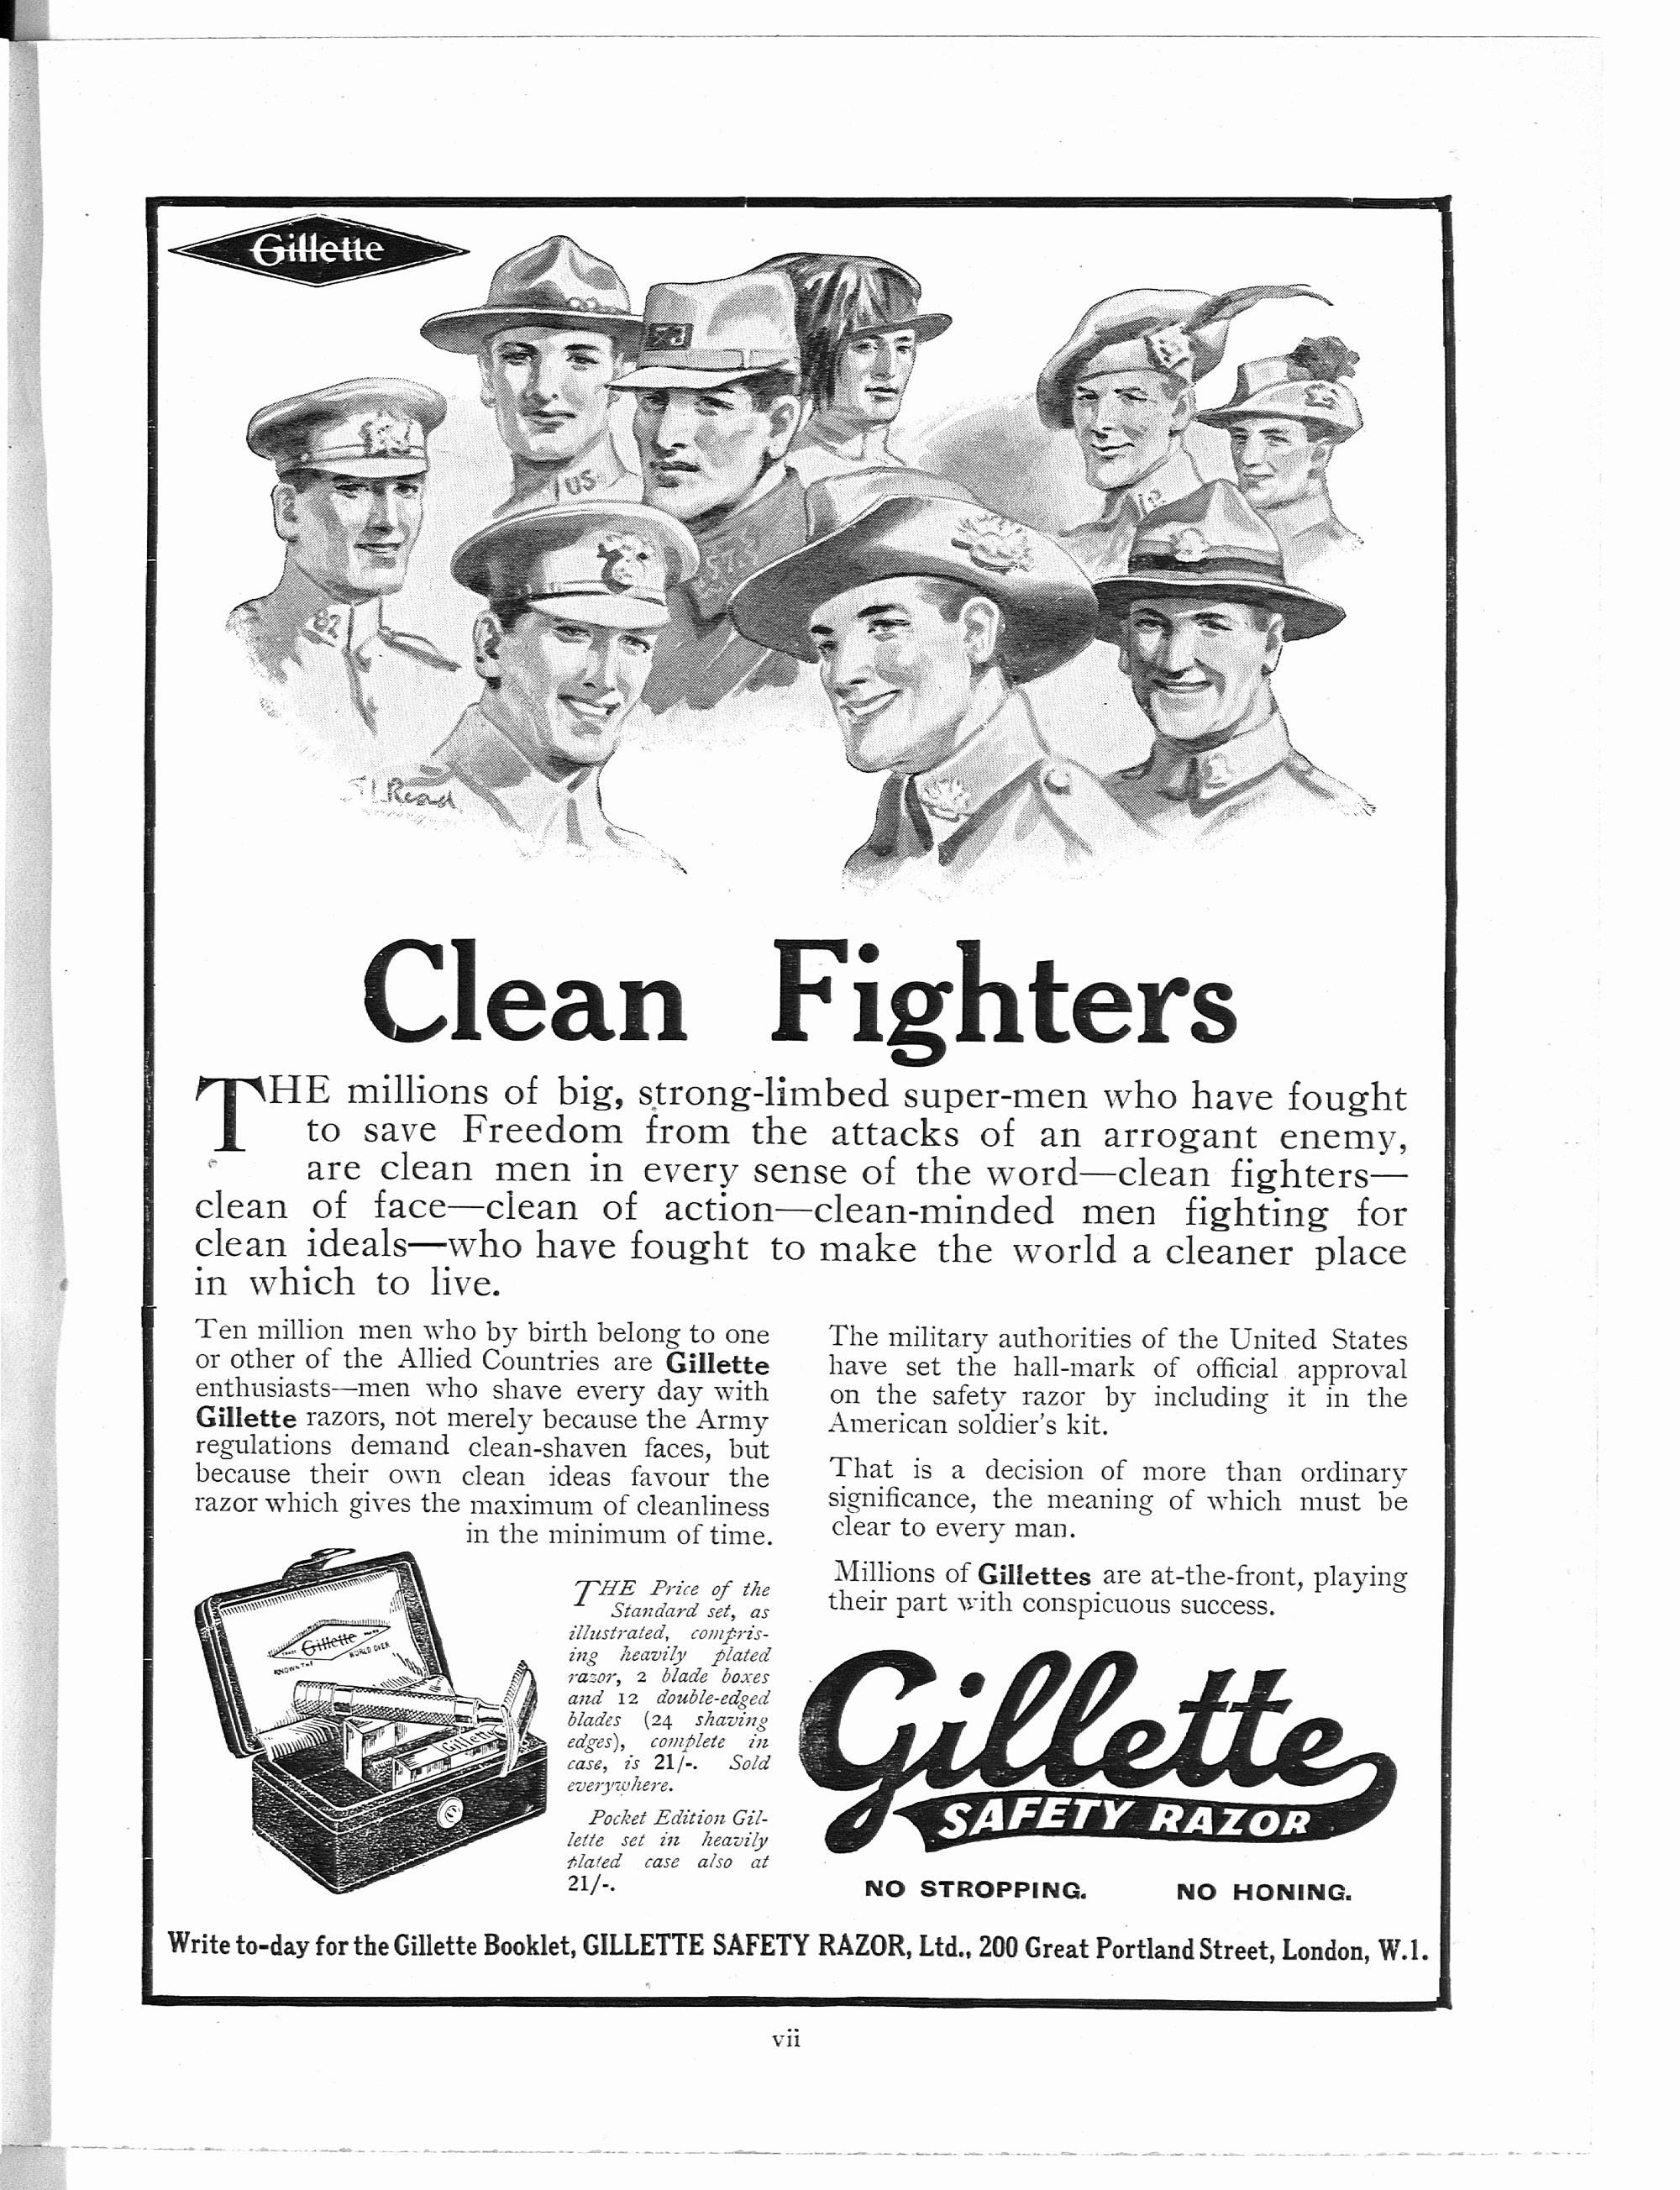 Clean fighters - advert for Gillette safety razors